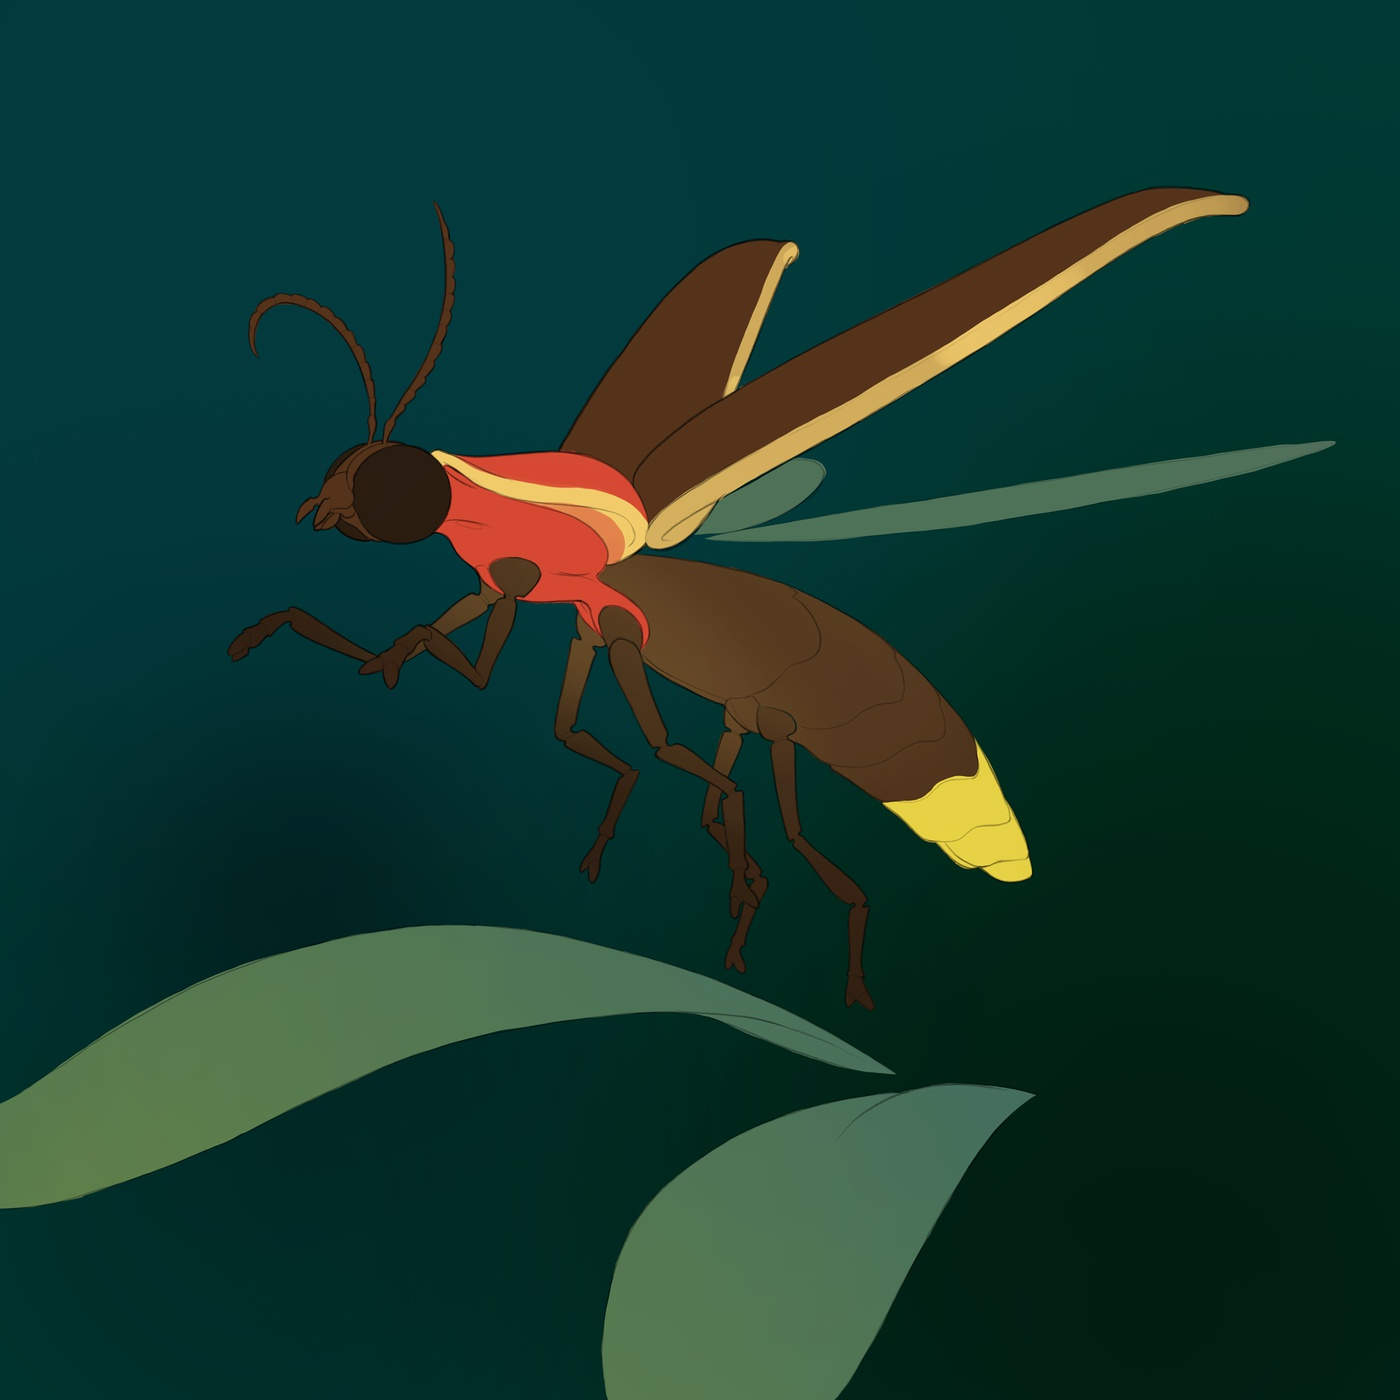 layer masking colouring glowing insect creature design model render glow effect photoshop